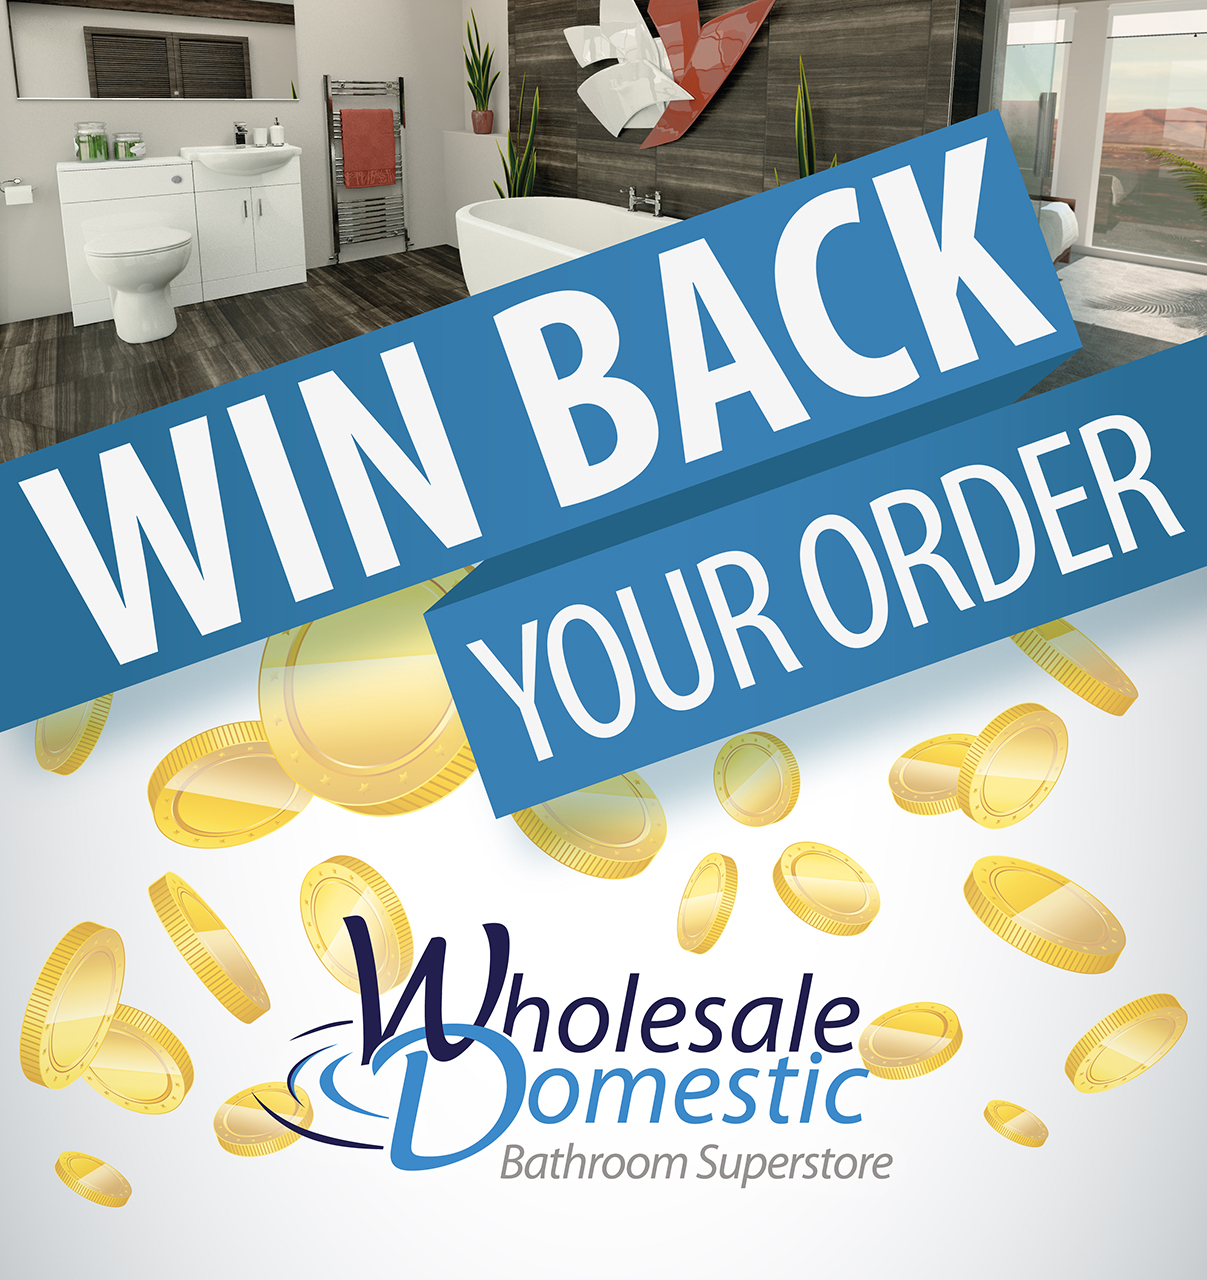 Win back your order with Wholesale Domestic